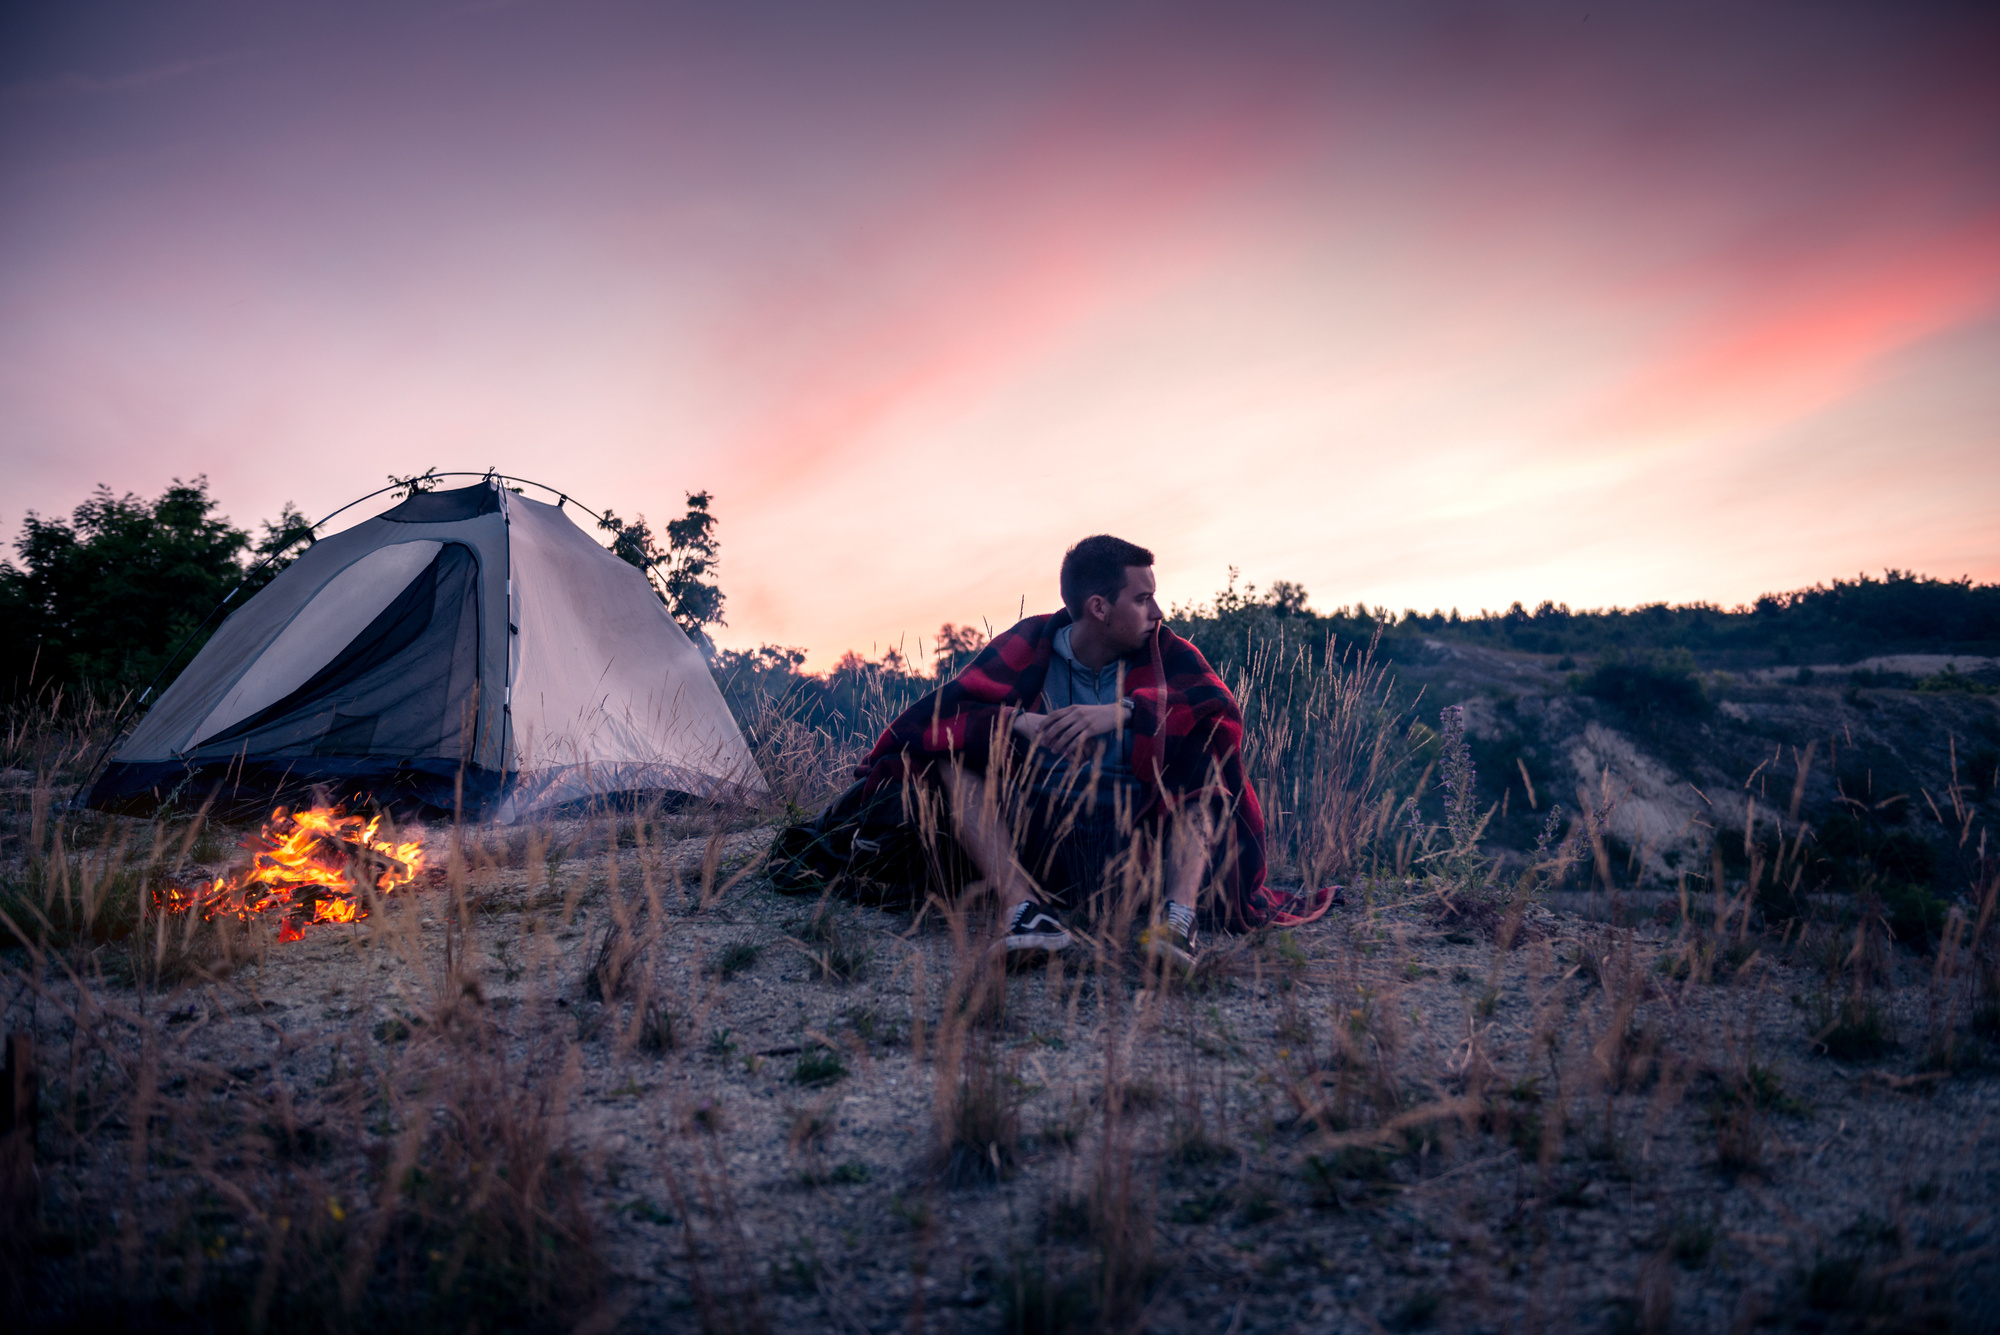 Modern Men Outdoors: The 6 Coolest Camping Gadgets Sure to Impress Your Friends